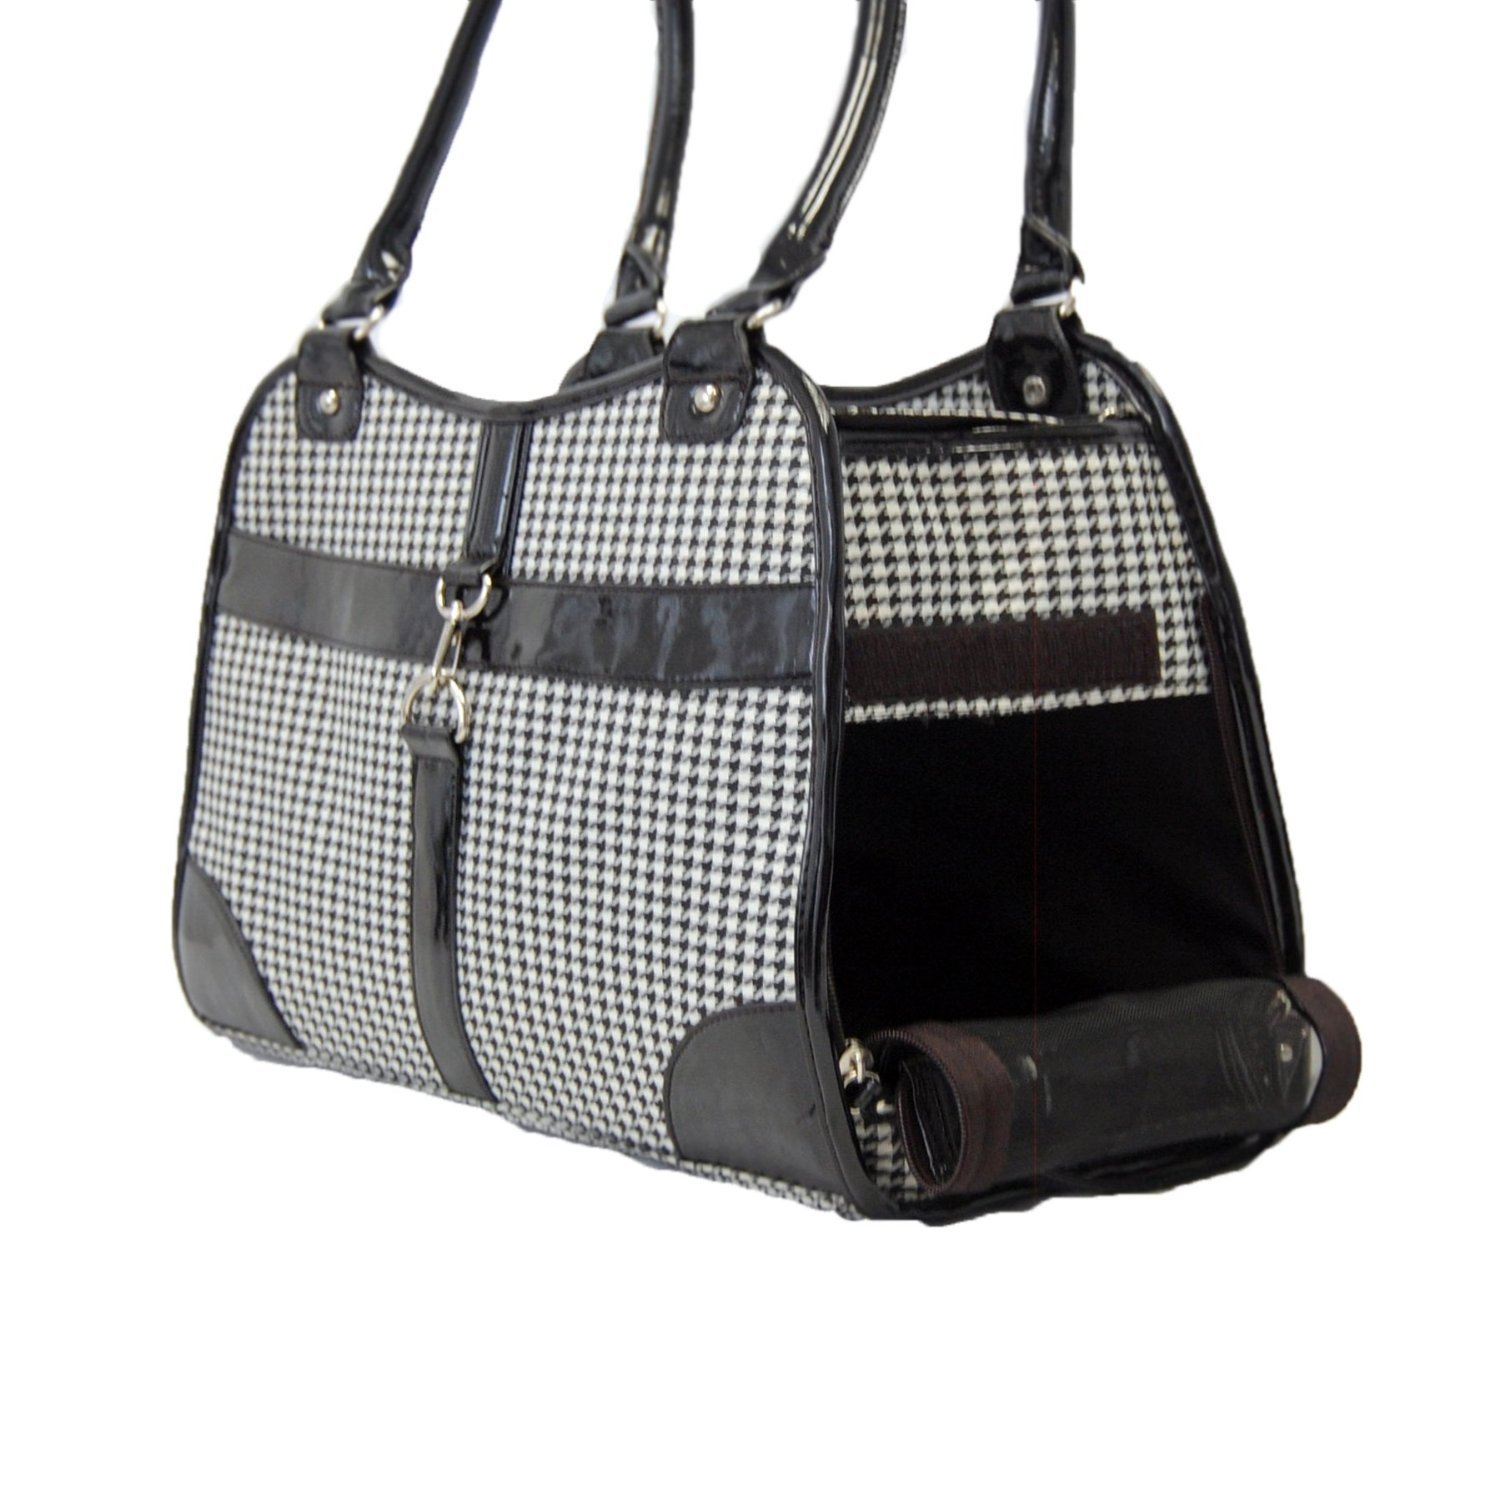 Houndstooth Print Tote Pet Dog Cat Carrier/Tote Purse Travel Airline Bag -Black-Medium by mpet